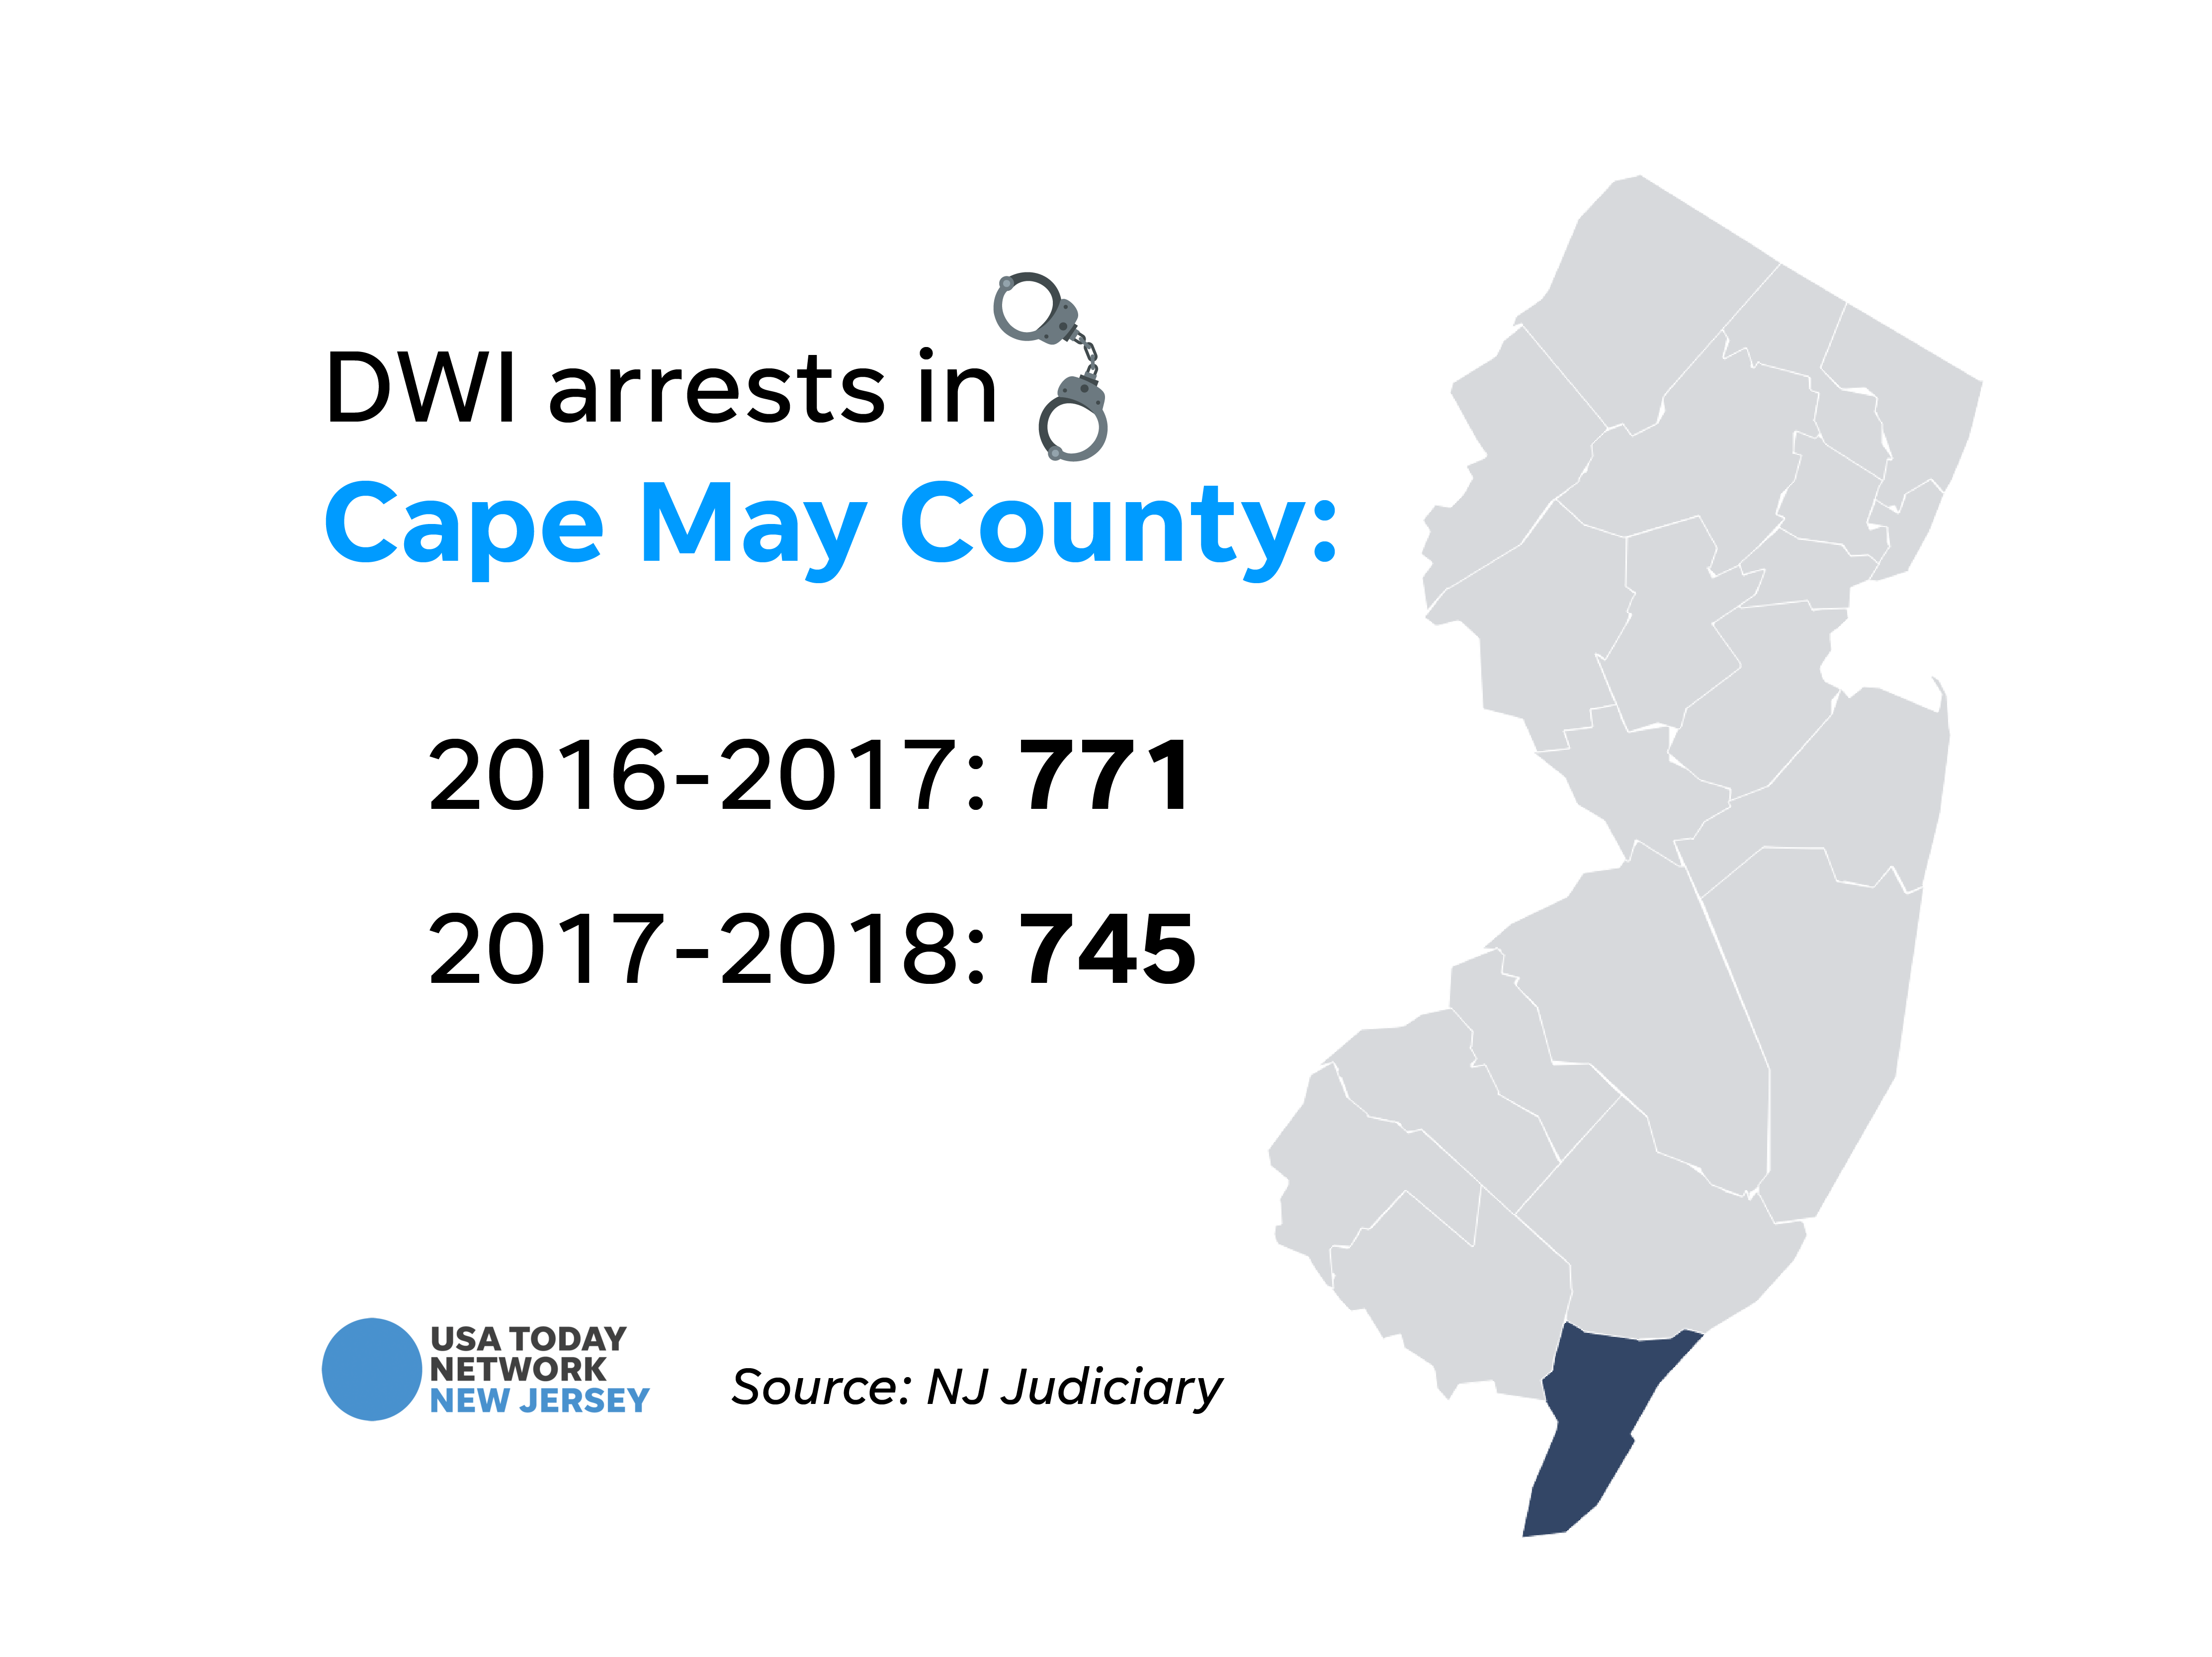 DWI arrests in Cape May County.